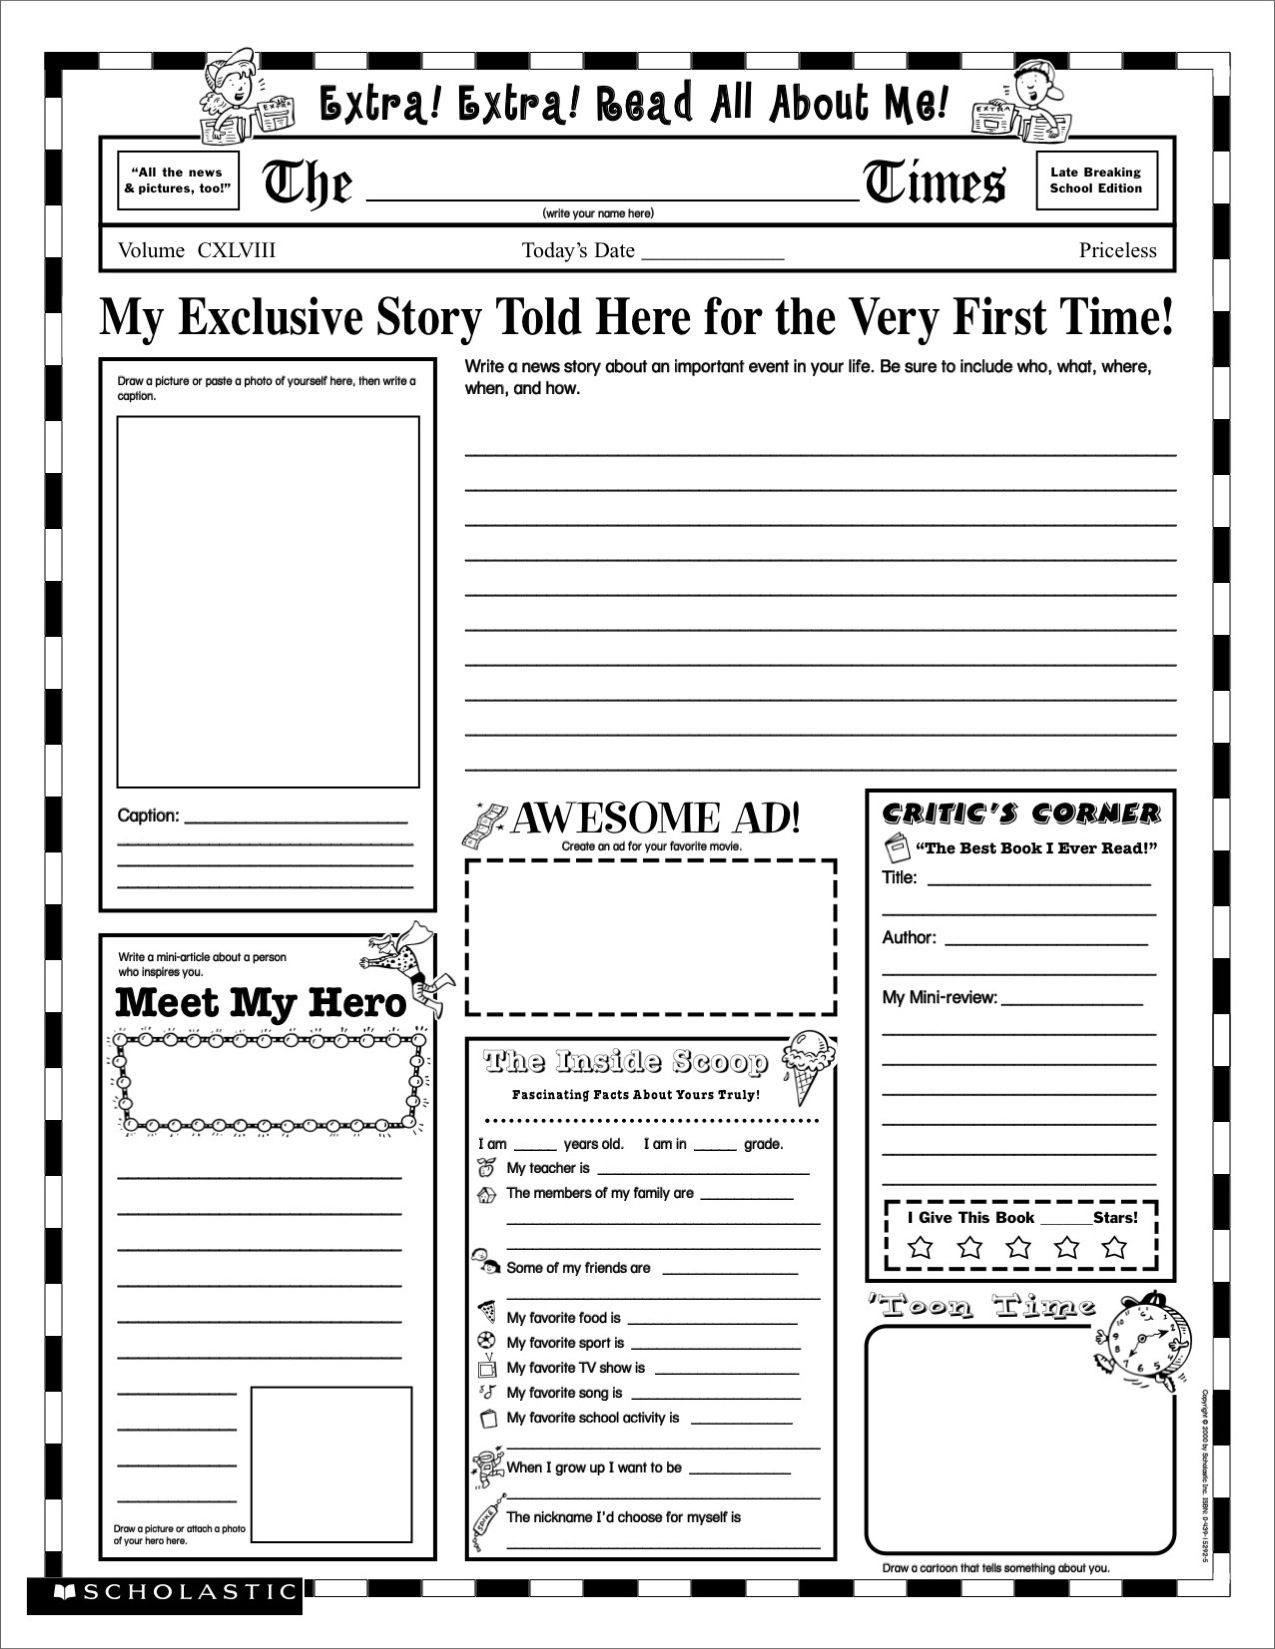 medium resolution of template for research report 4th grade - Google Search   Learning poster